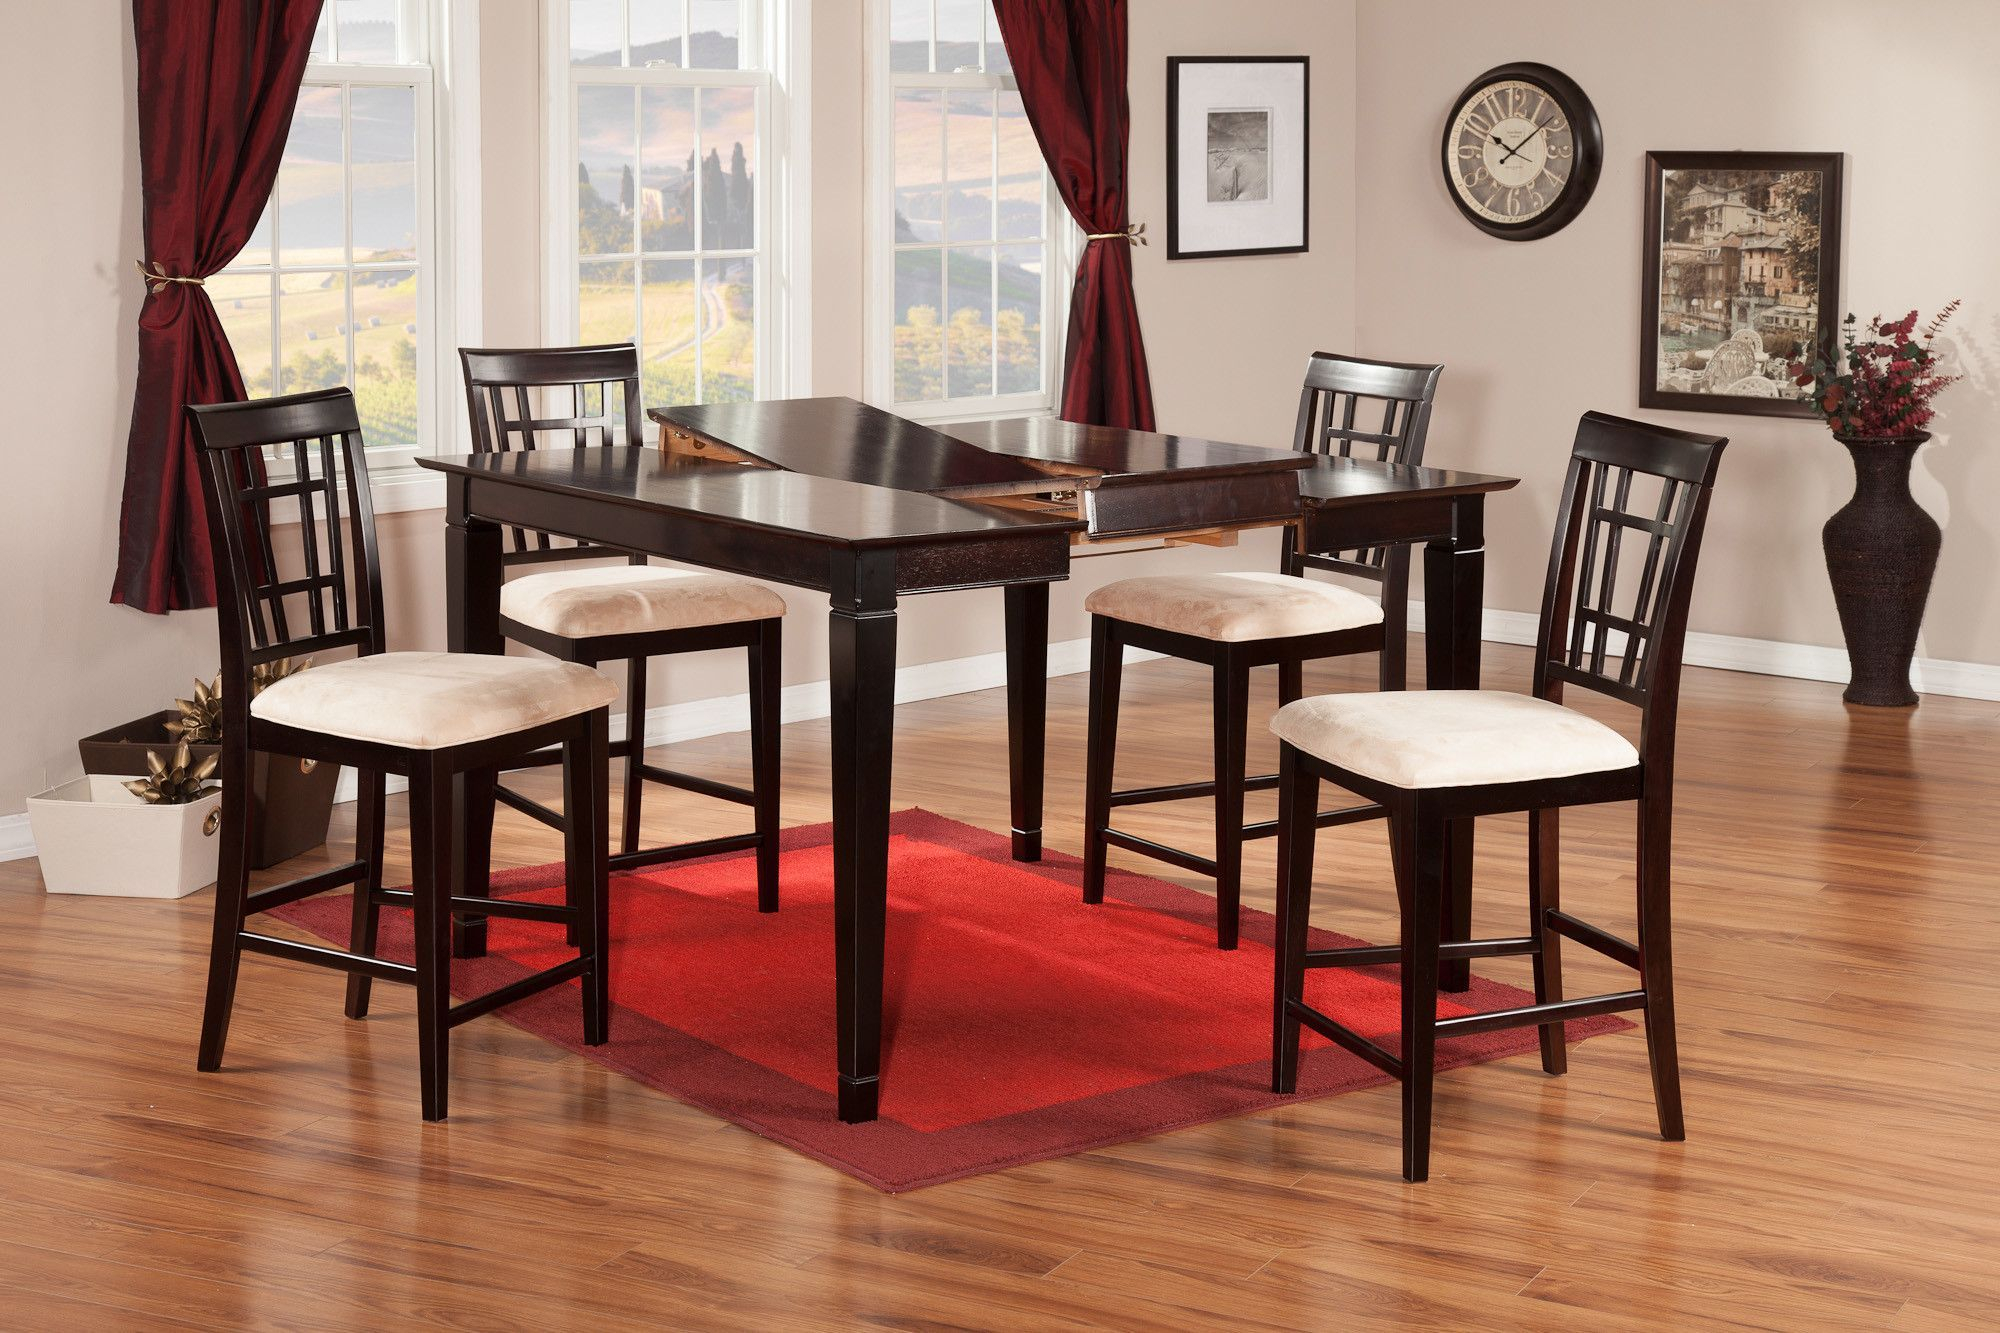 Montego Bay 5 Piece Counter Height Dining Set | Products | Pub Table With Regard To Current Pattonsburg 5 Piece Dining Sets (View 14 of 20)